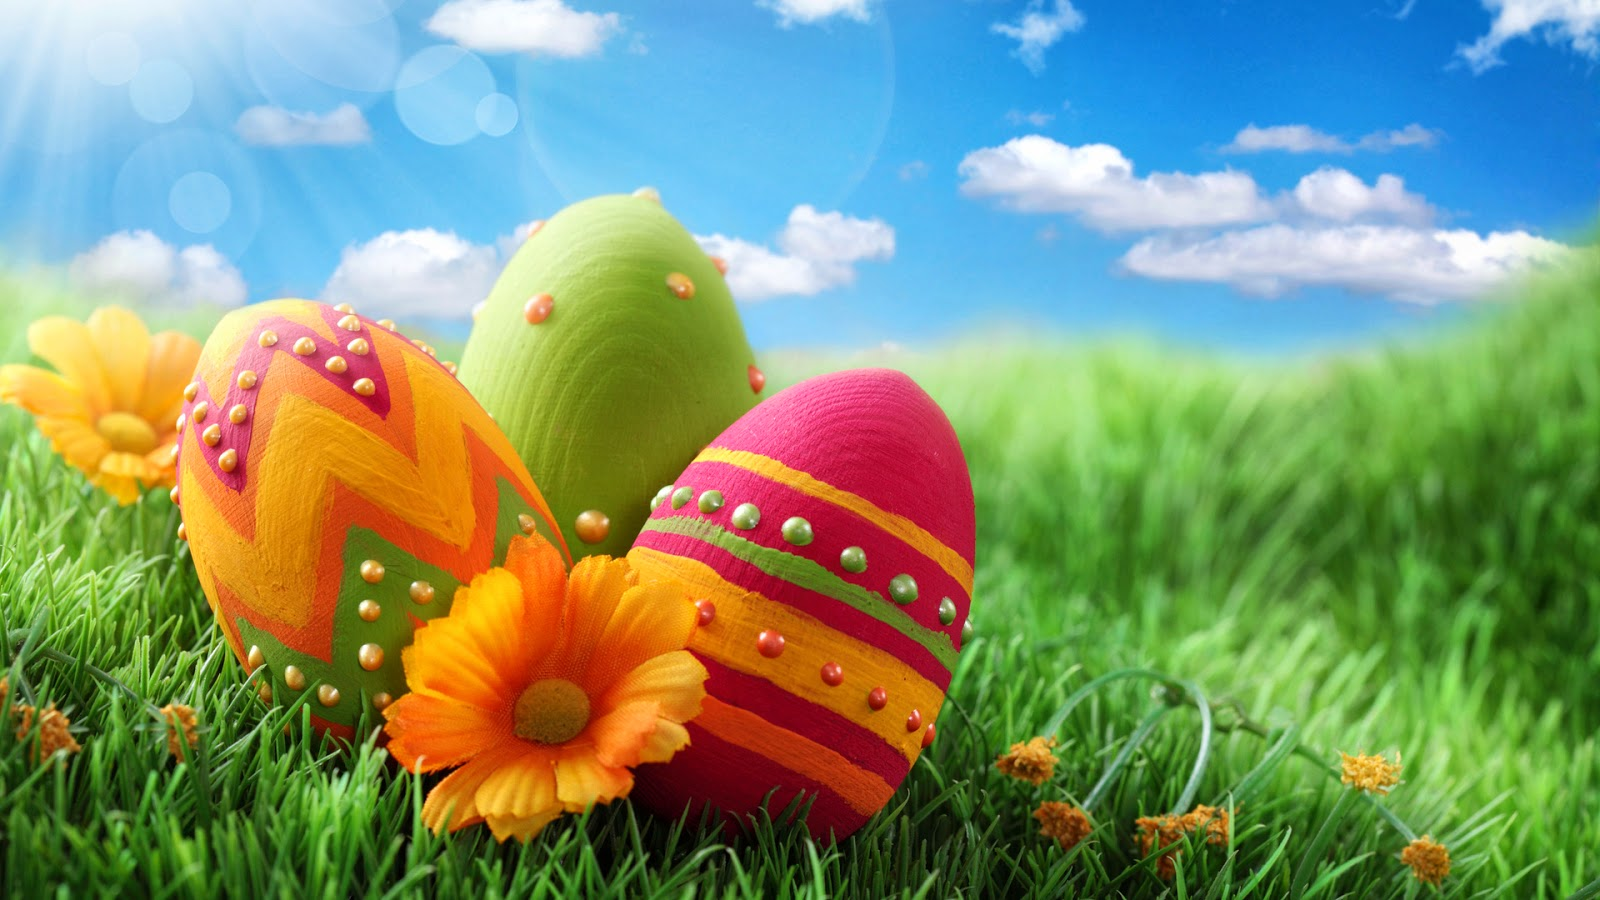 Wallpapers for Easter